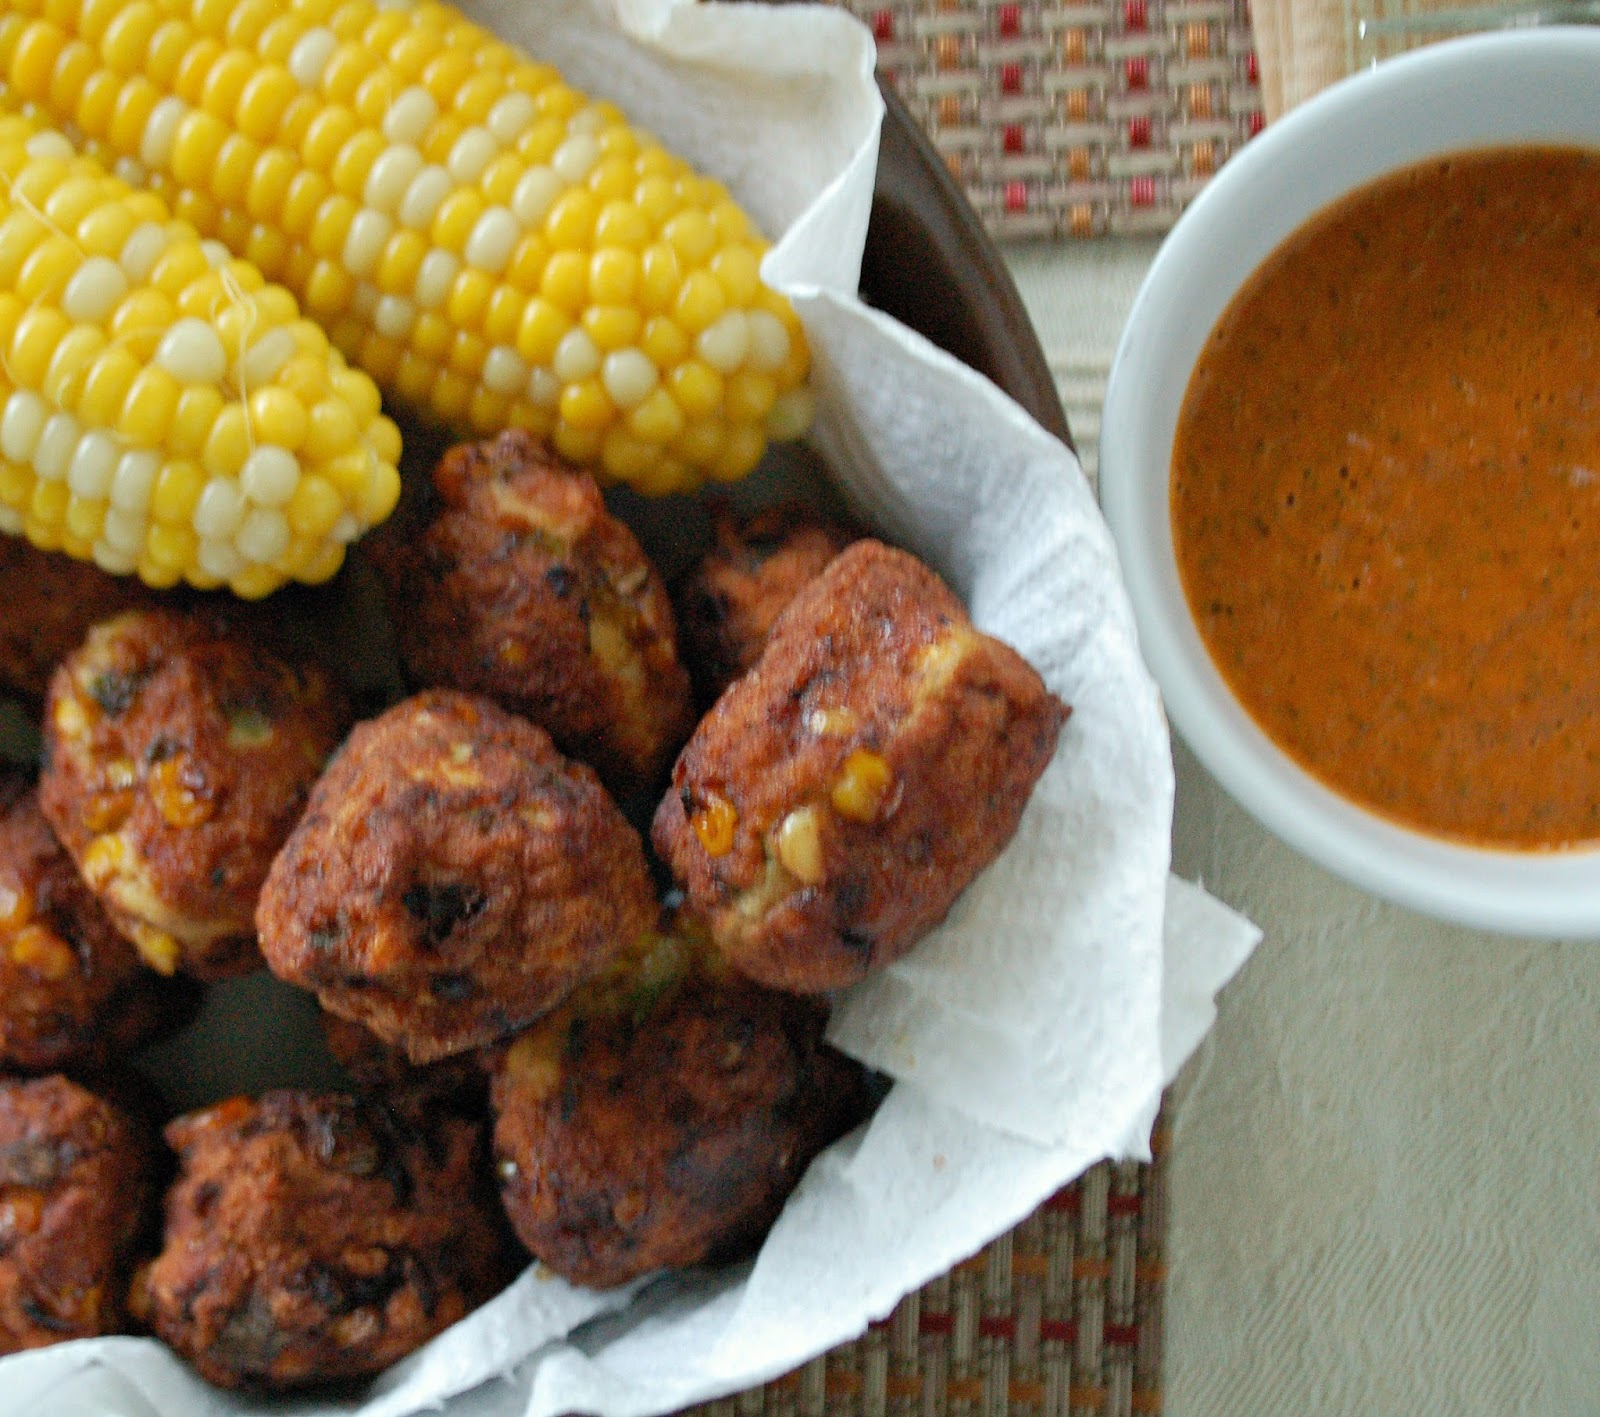 ... : Turkey and Corn Meatballs with a Roasted Red Pepper Dipping Sauce